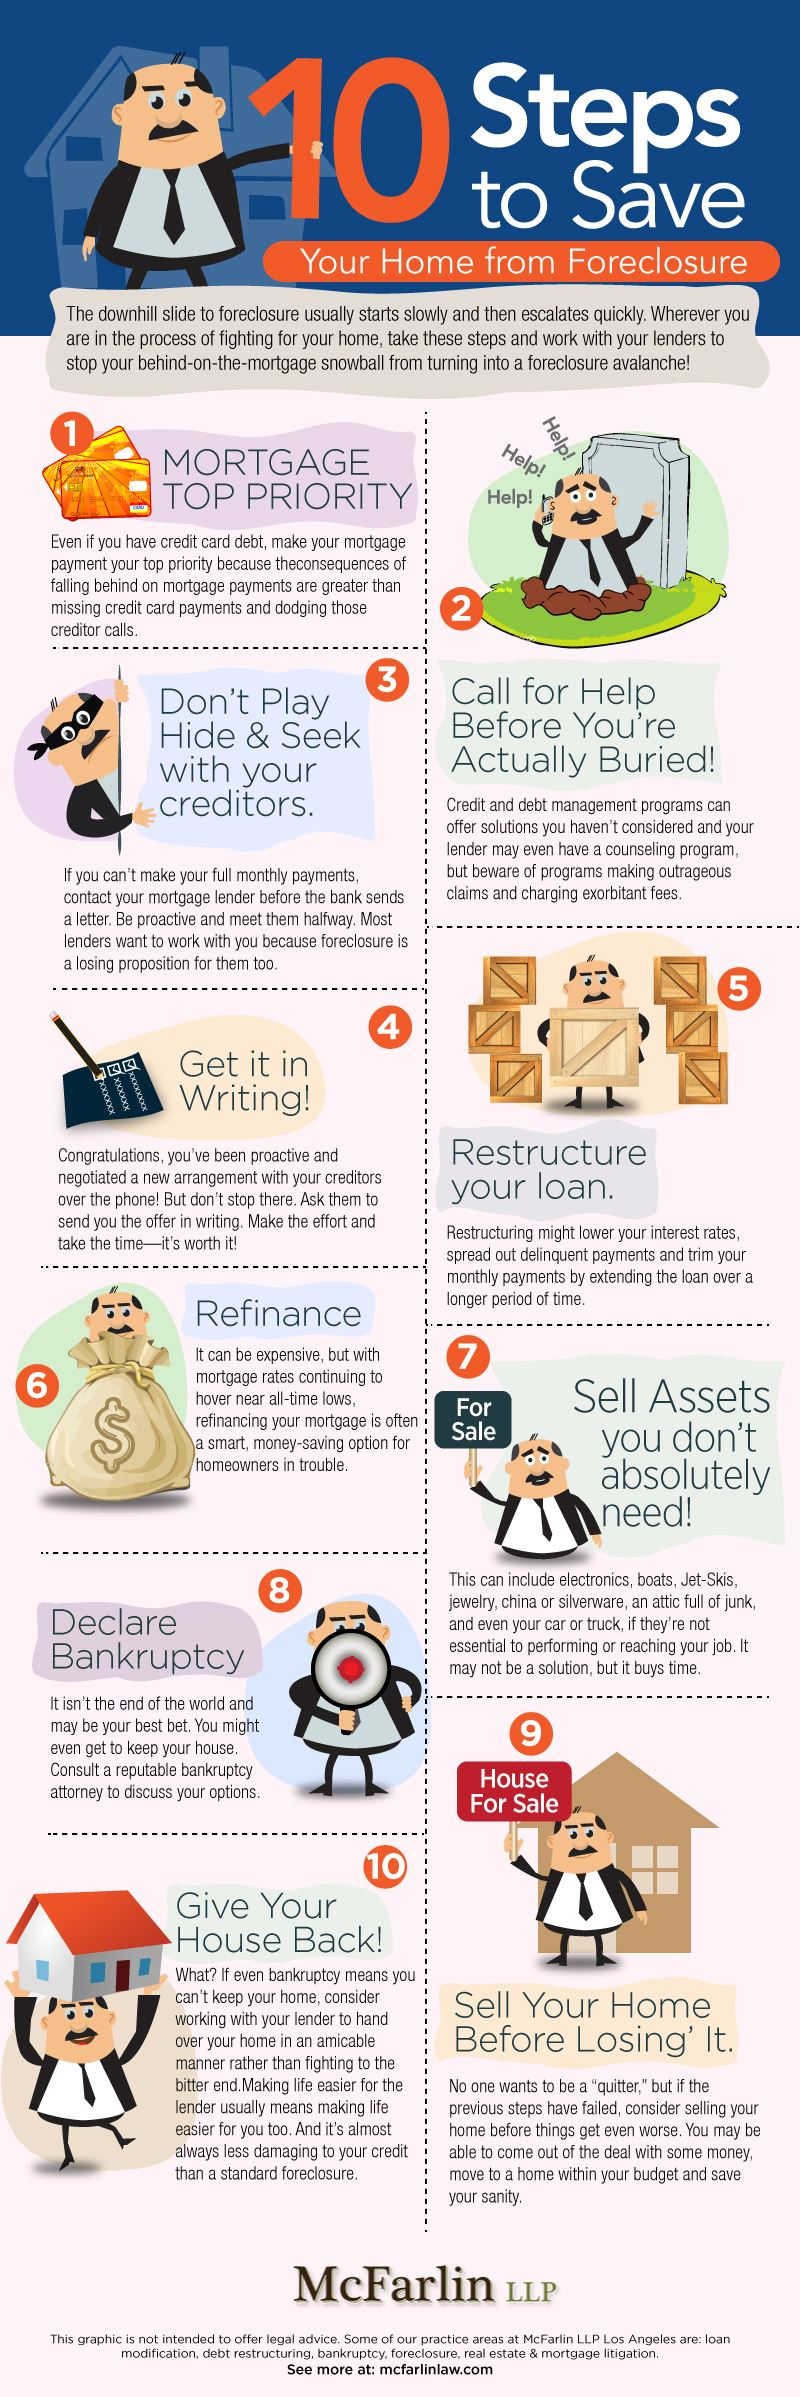 10 Steps to save your home from foreclosure